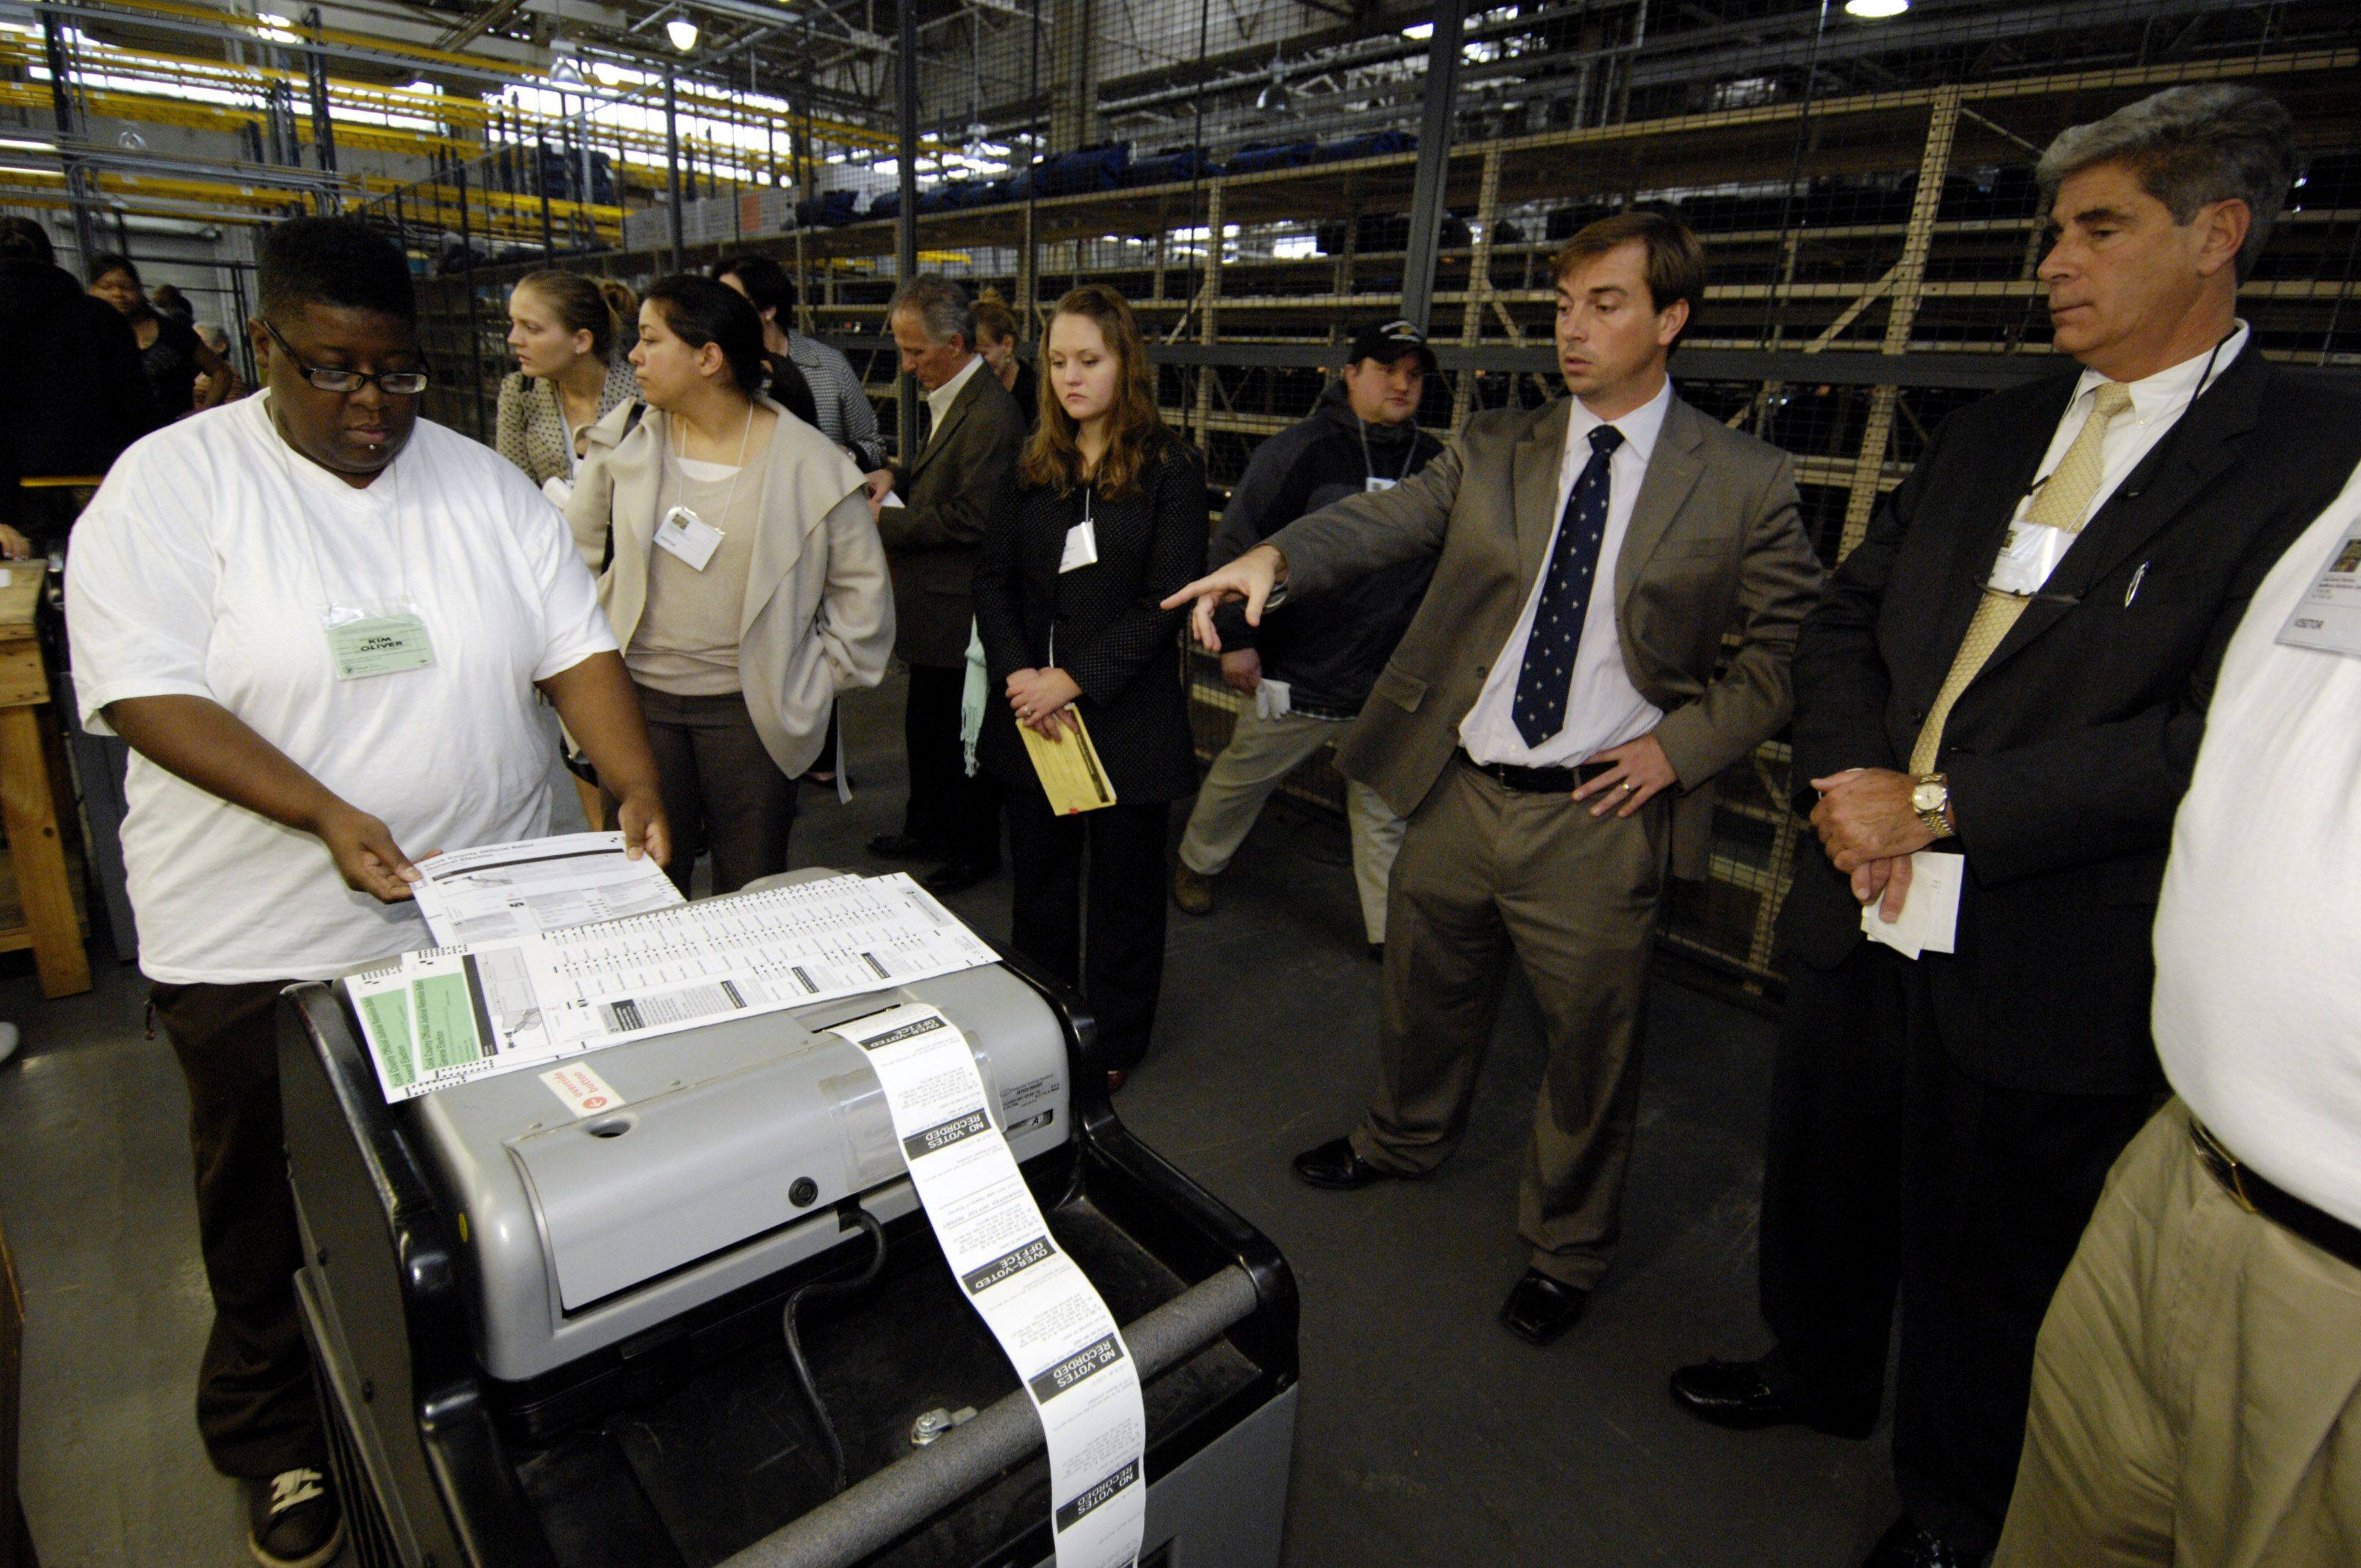 Kim Oliver runs election ballots from the Schaumburg #2 precinct through the counter at the Cook County Clerk Election Warehouse in Chicago as clerk and candidate representative look on.